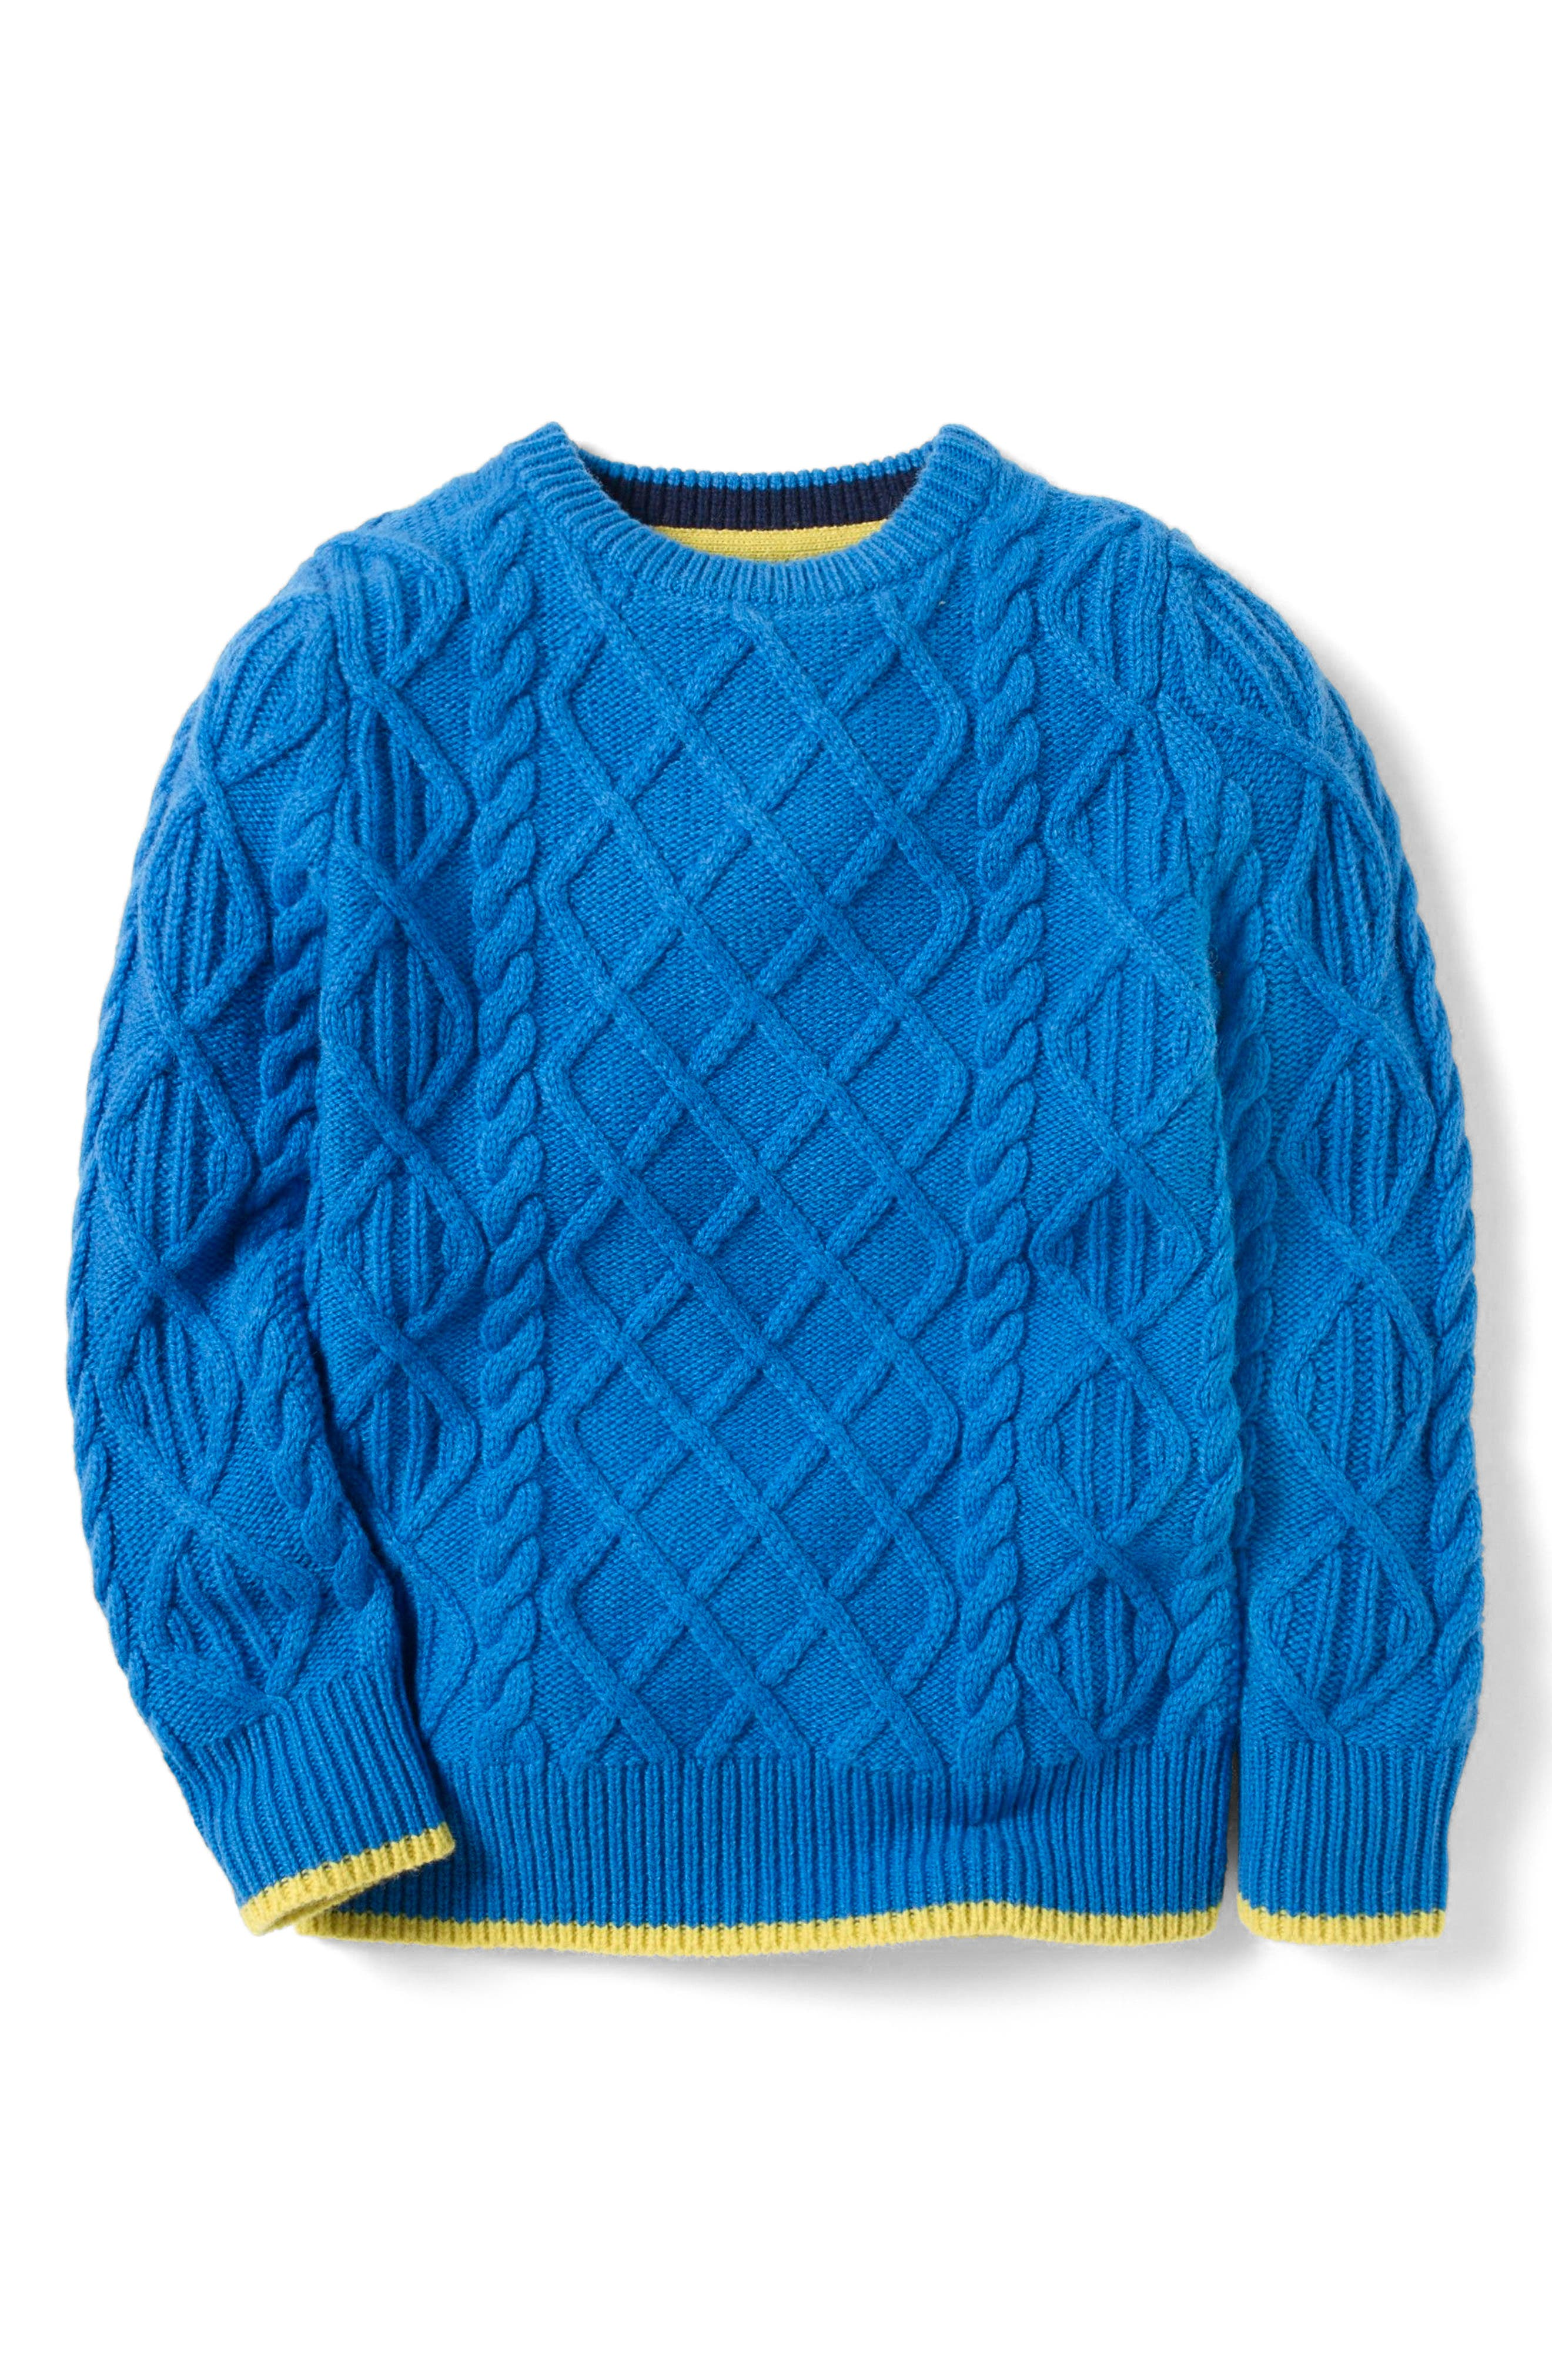 Alternate Image 1 Selected - Mini Boden Cable Wool Sweater (Toddler Boys, Little Boys & Big Boys)